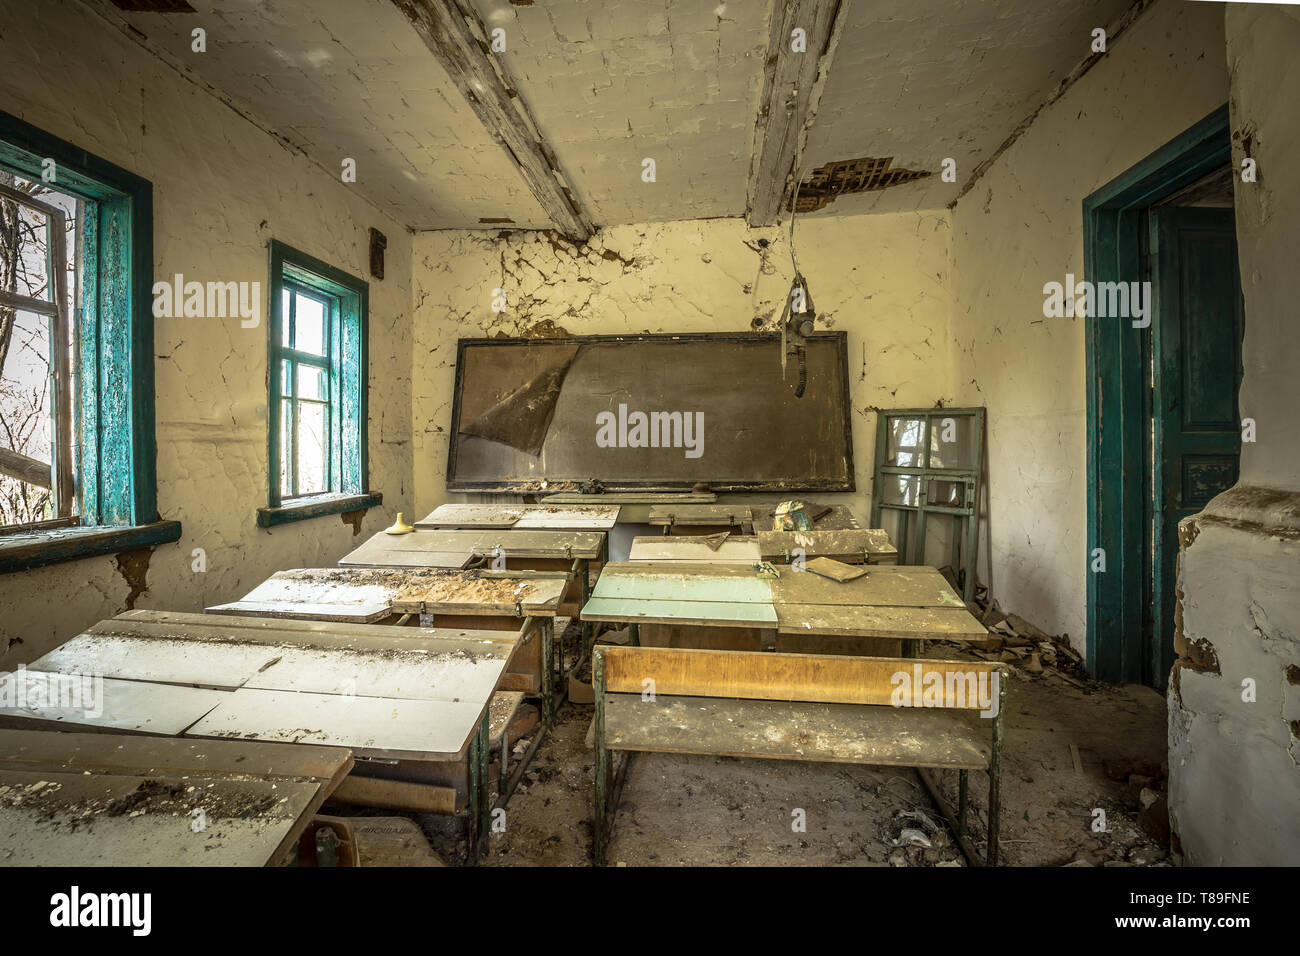 Abandoned school in Belarus Chernobyl exclusion zone, recently opened for the public from april 2019. - Stock Image